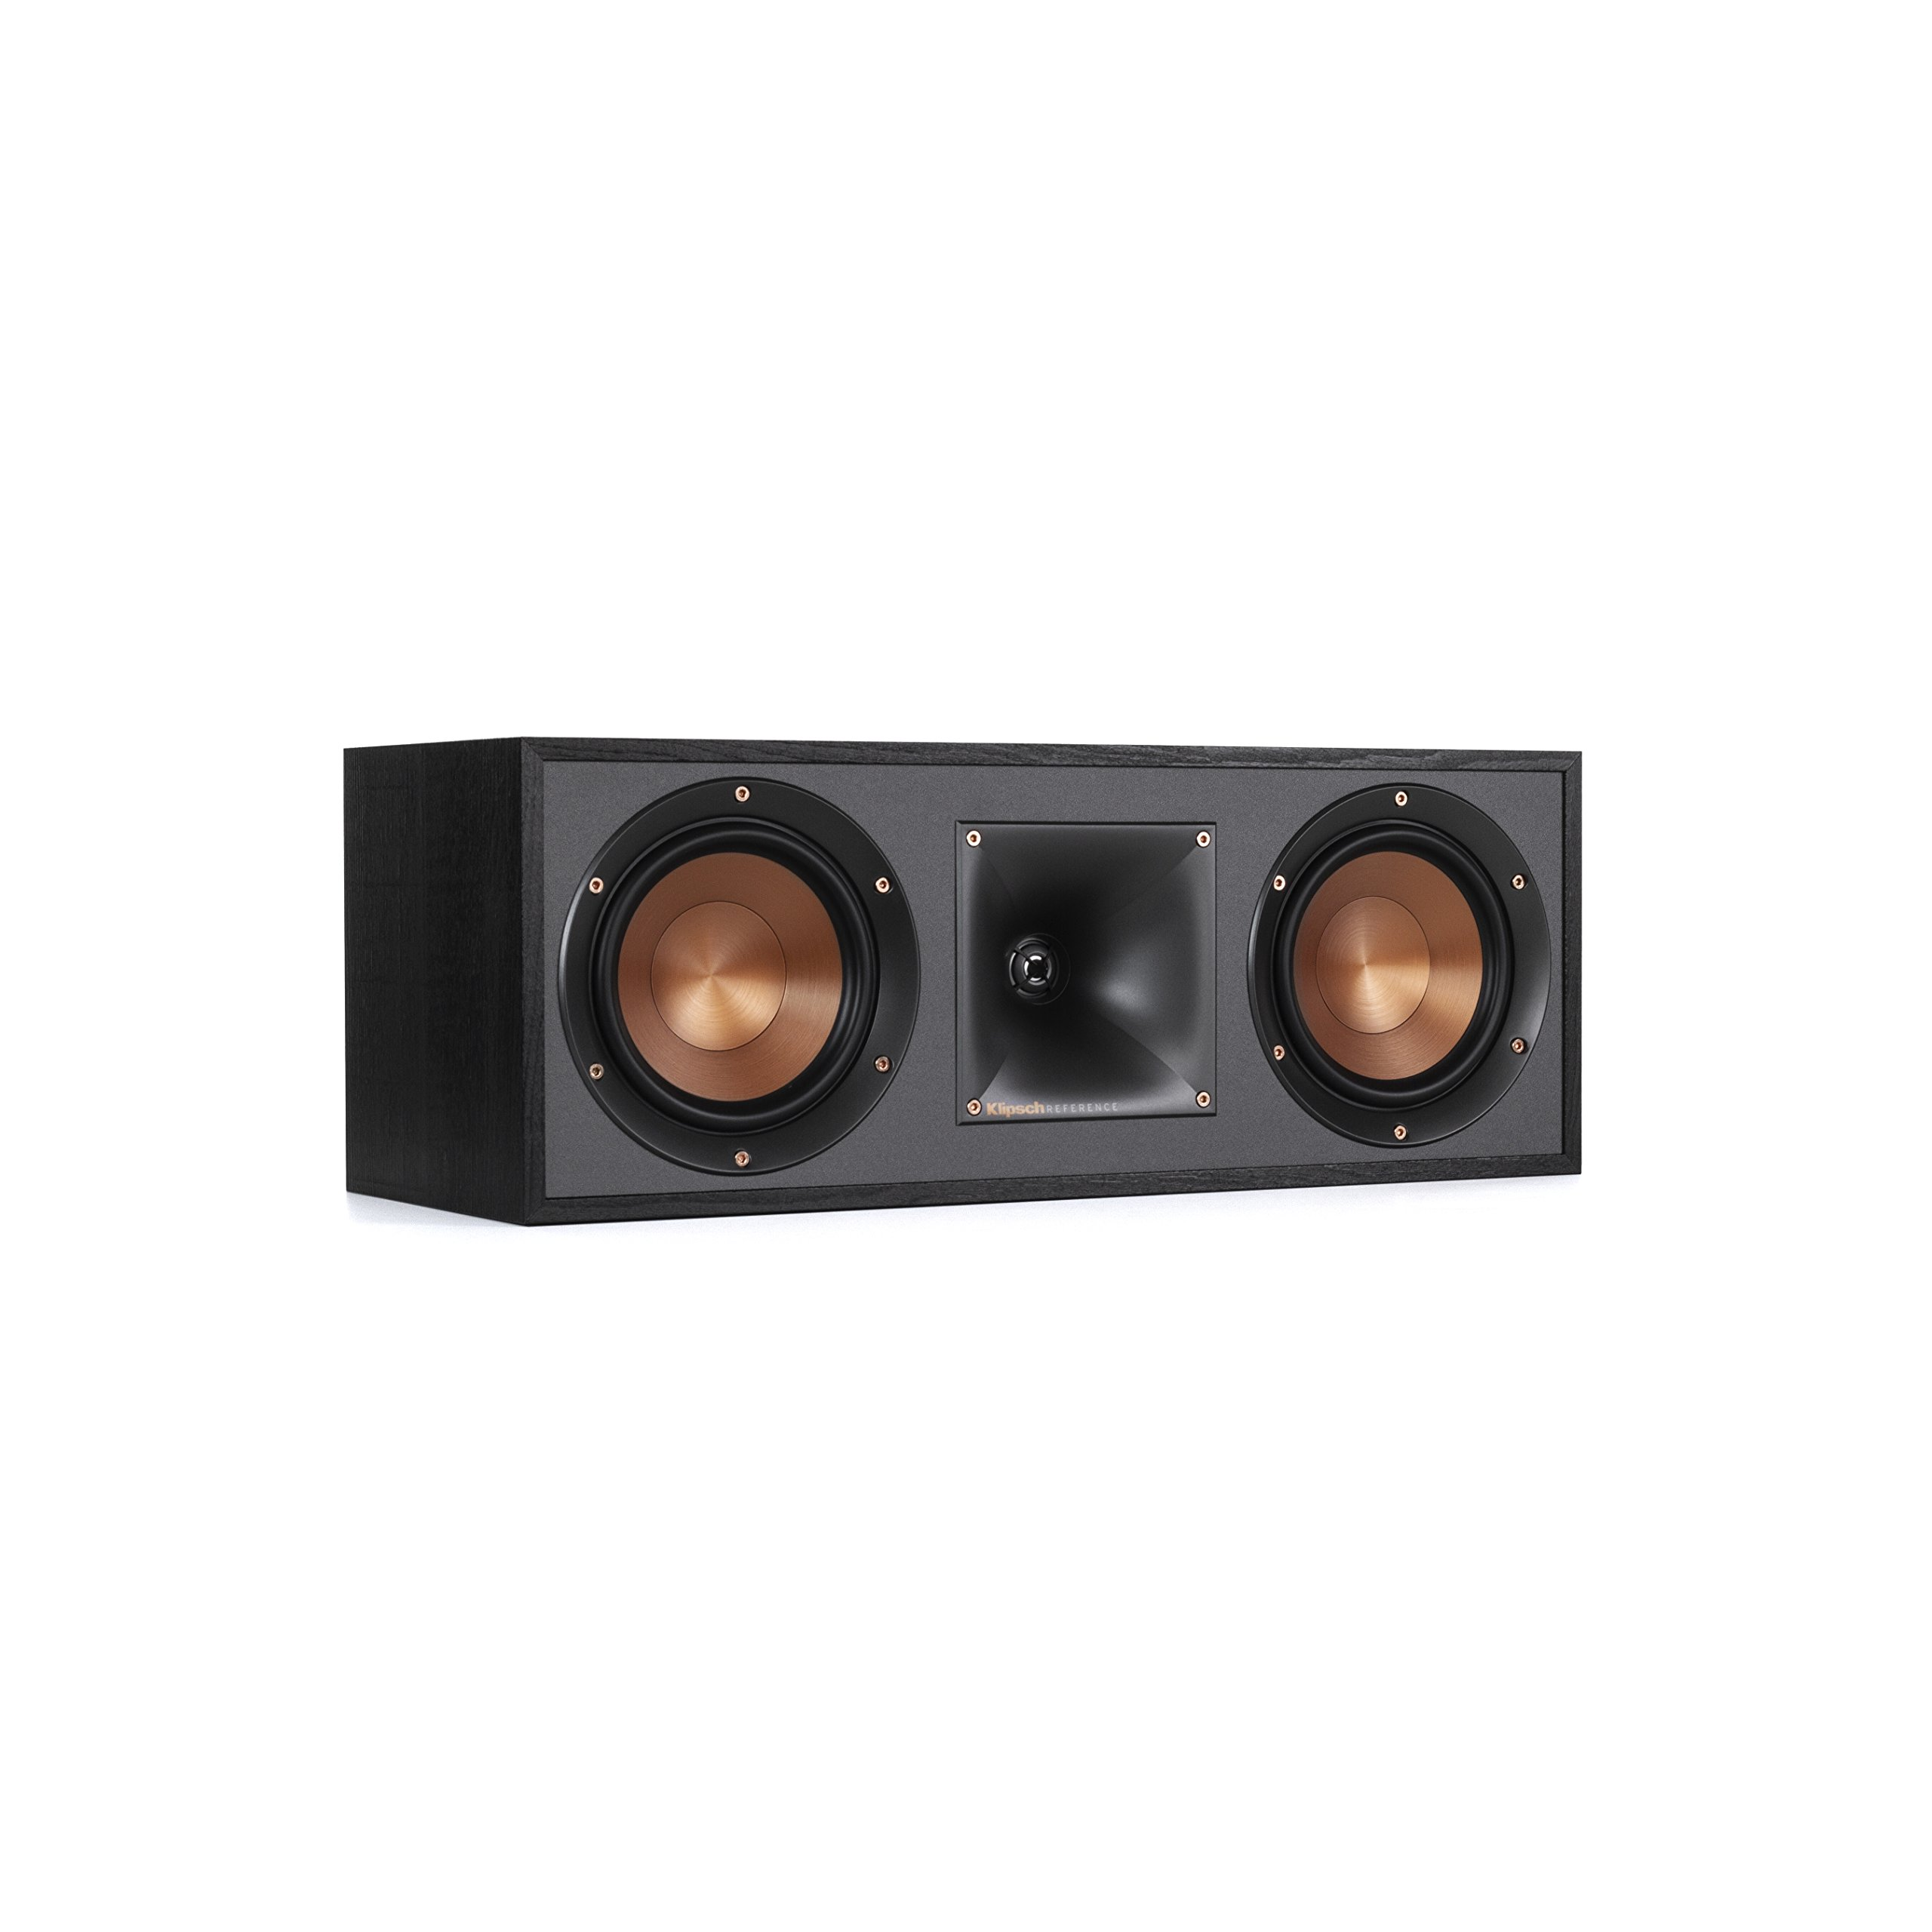 Klipsch R-52C Powerful detailed Center Channel Home Speaker - Black by Klipsch